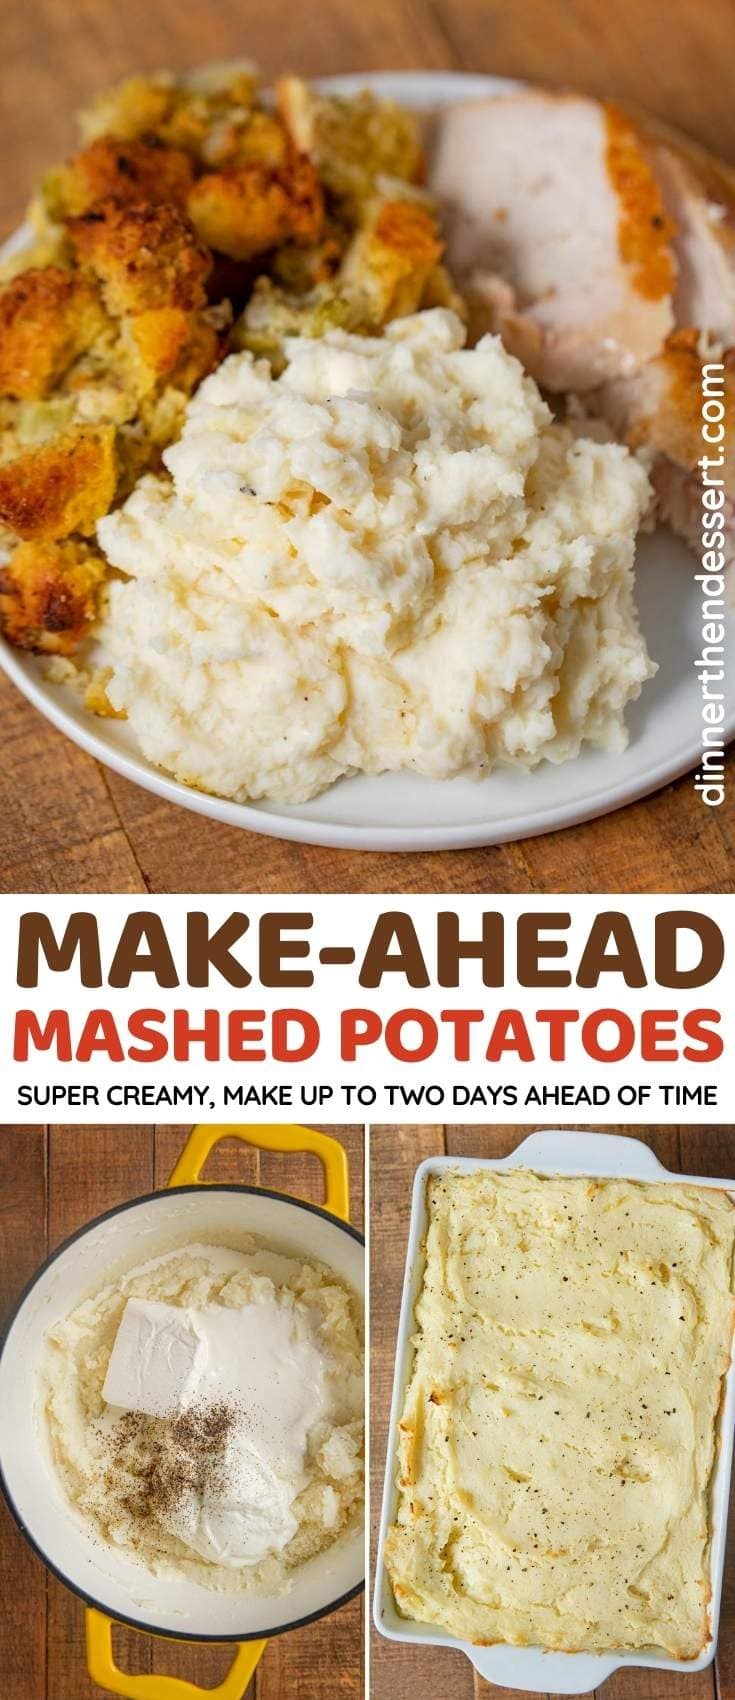 Make-Ahead Mashed Potatoes collage